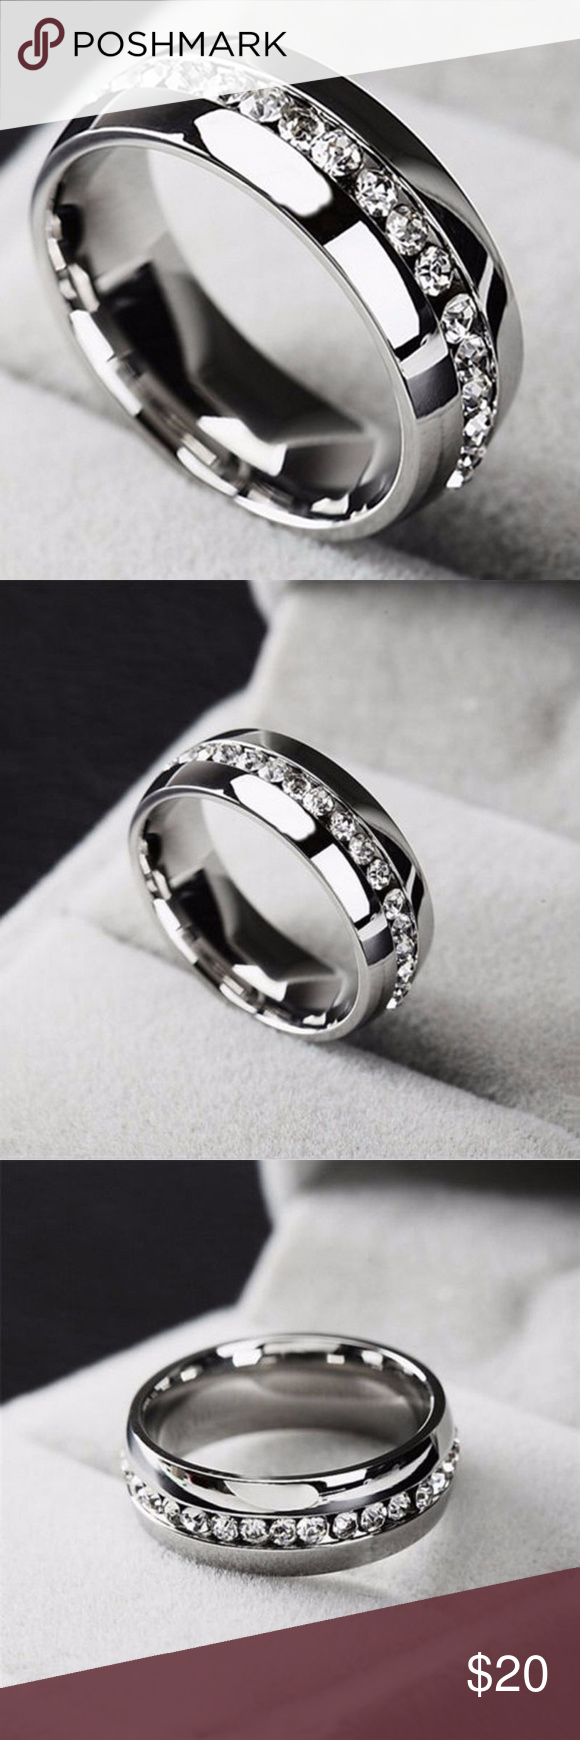 Men's Stainless Steel Size 9 Engagement Ring NWT Mens